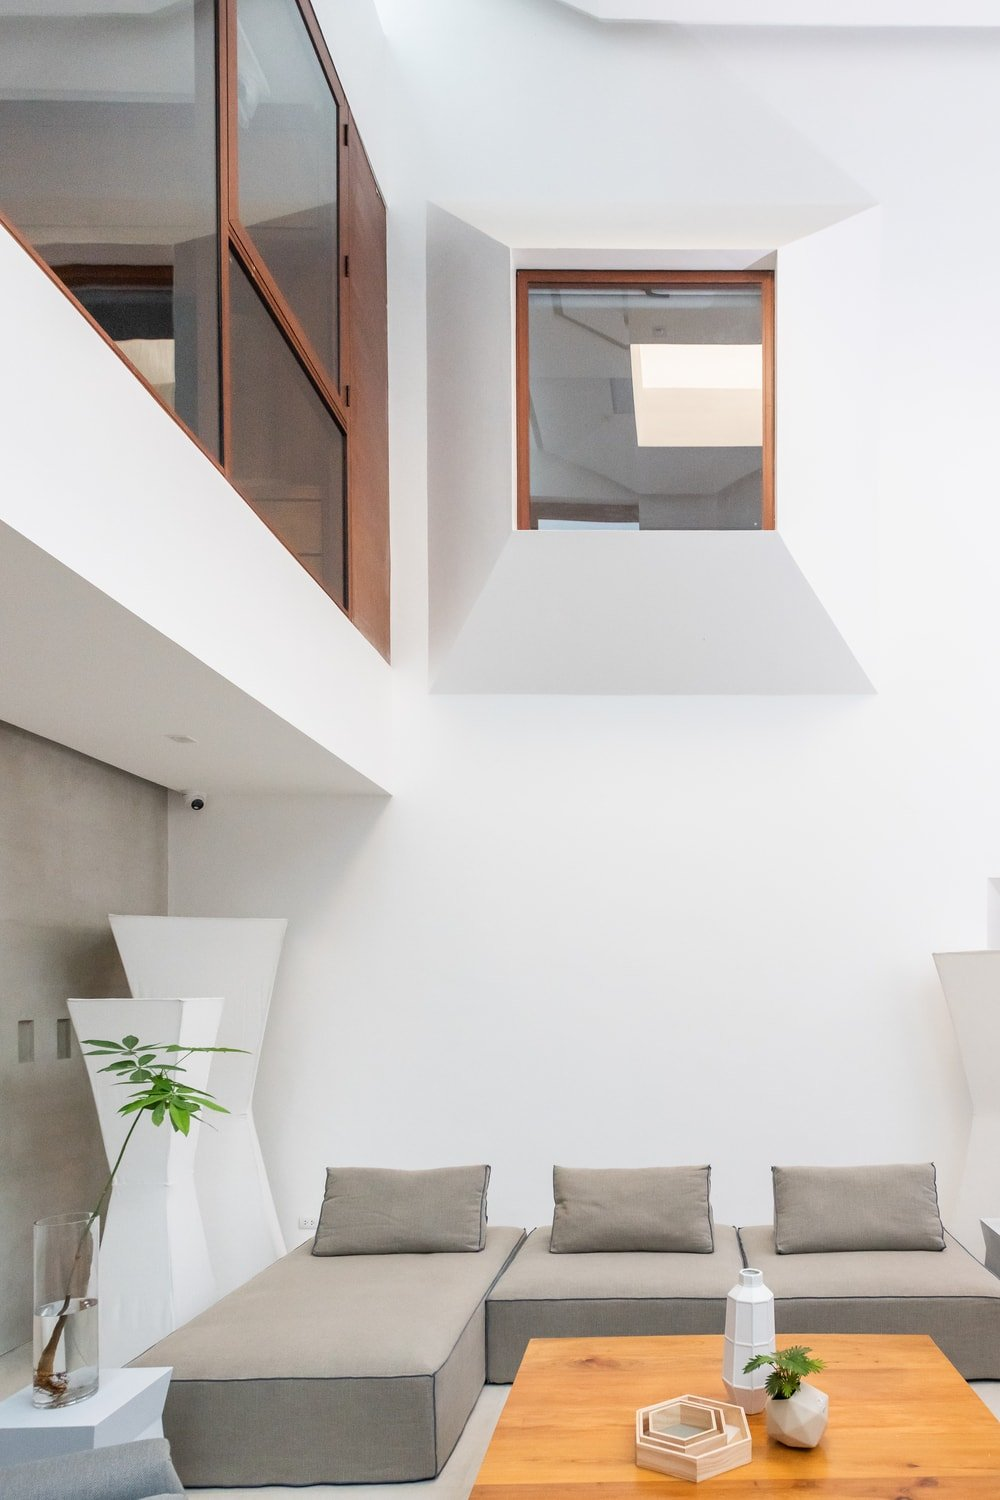 This is another look at the living room featuring the tall ceiling and indoor balcony above it with glass walls.